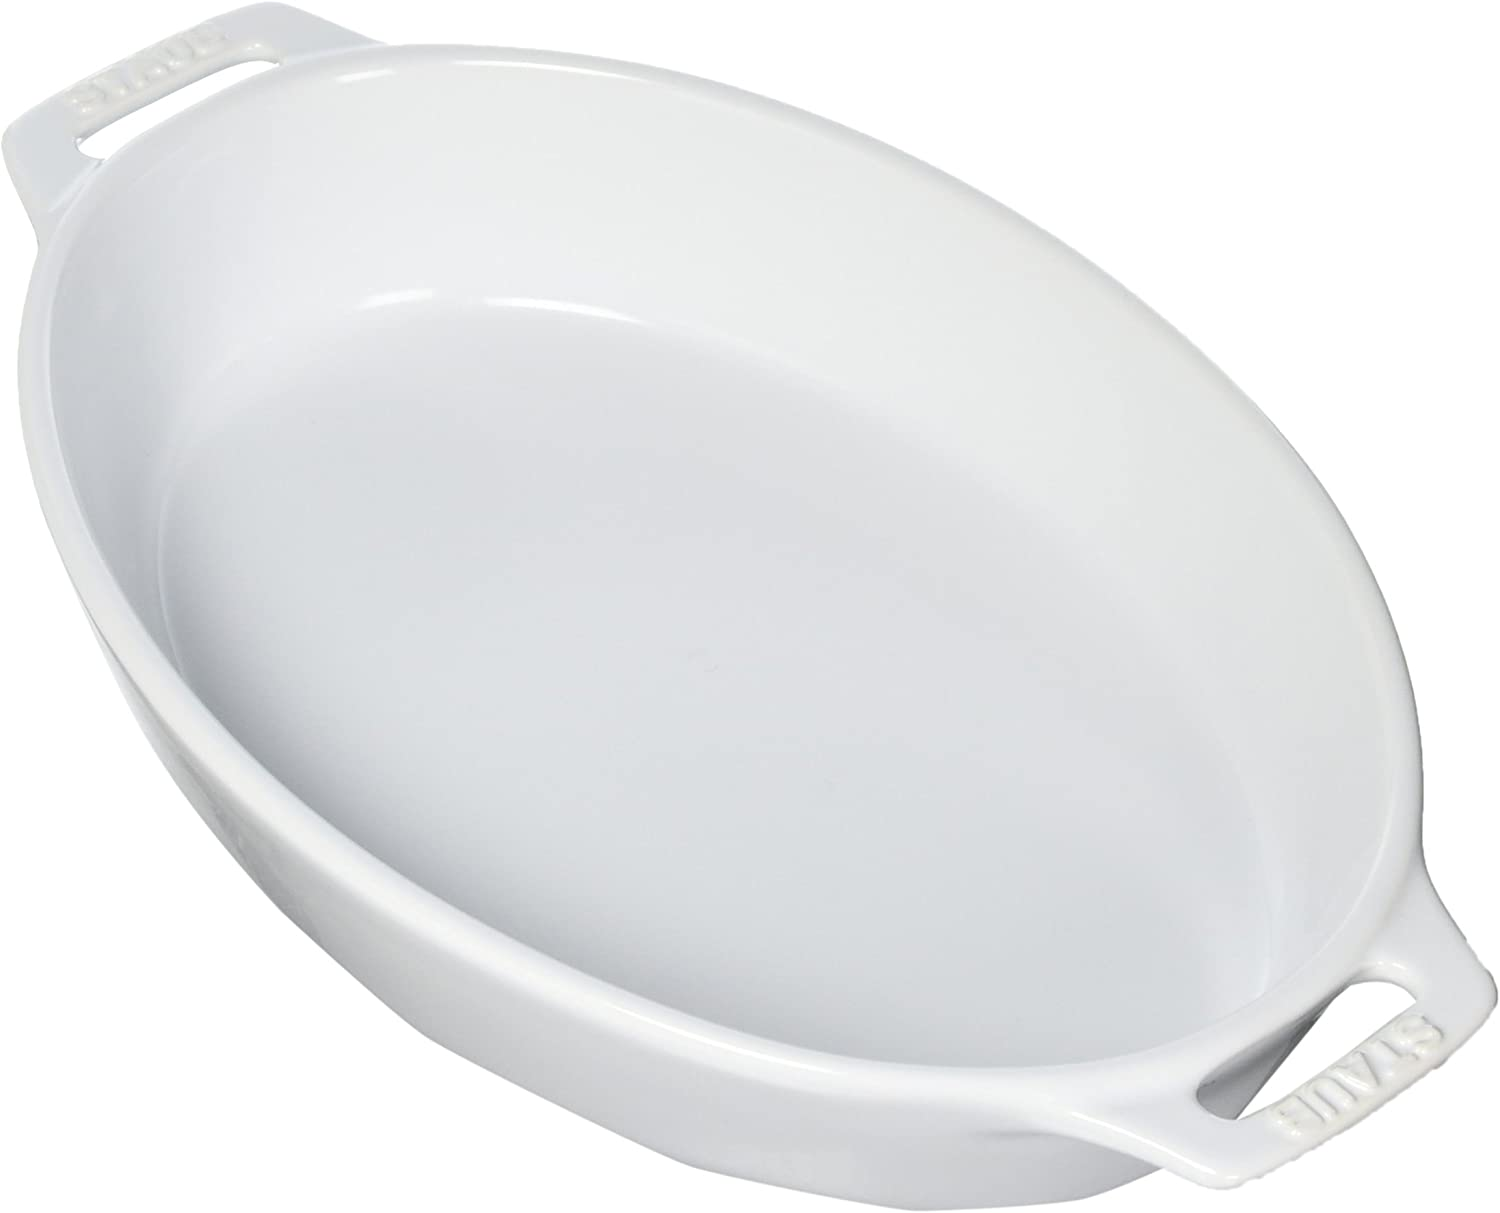 Staub 40508-608 Ceramics Oval Baking Dish, 11-inch, White